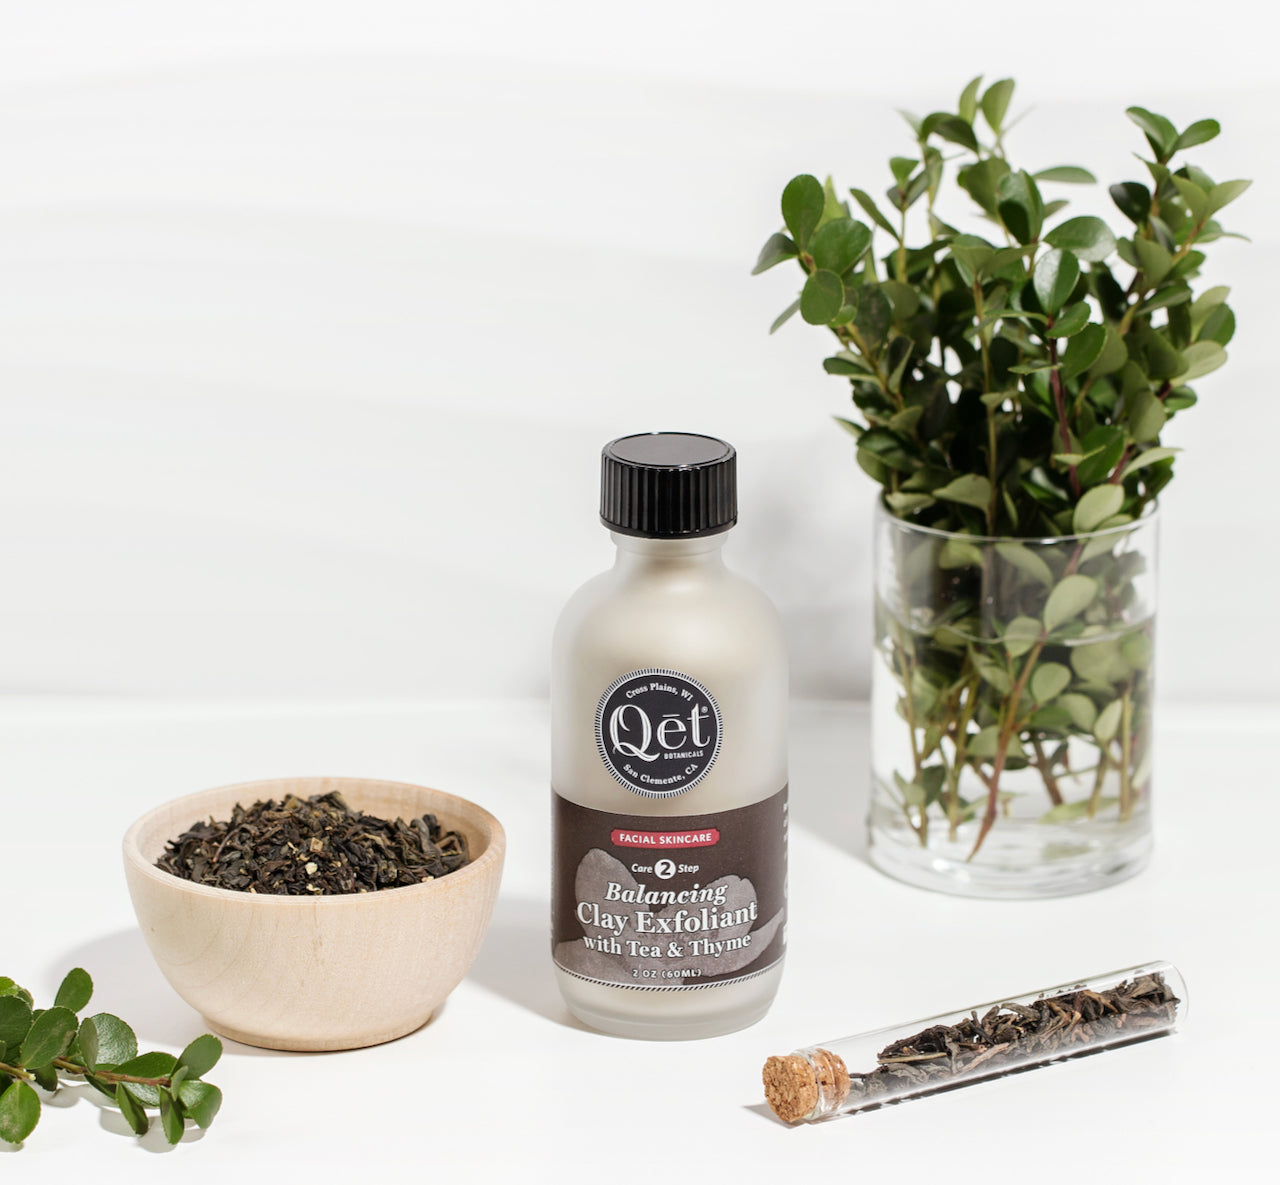 Qet-Botanicals-Balancing-Clay-Exfoliant-with-Tea-and-Thyme